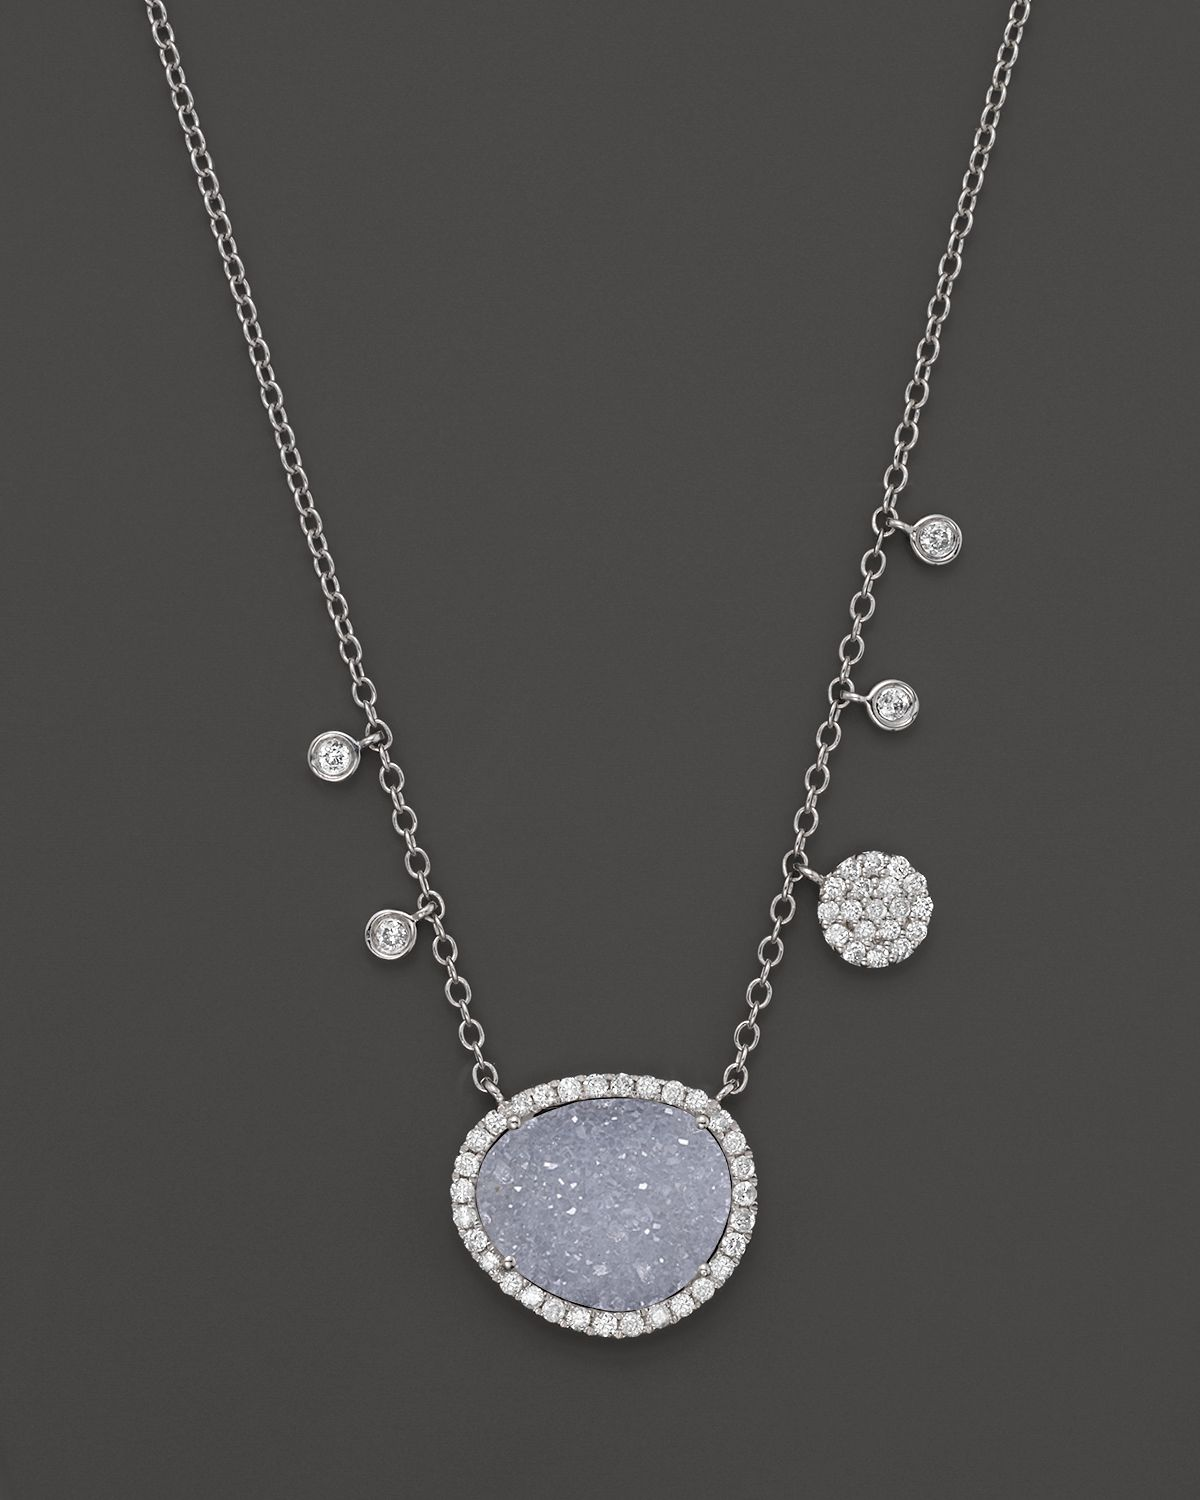 meira t 14k white gold druzy and necklace 16 in